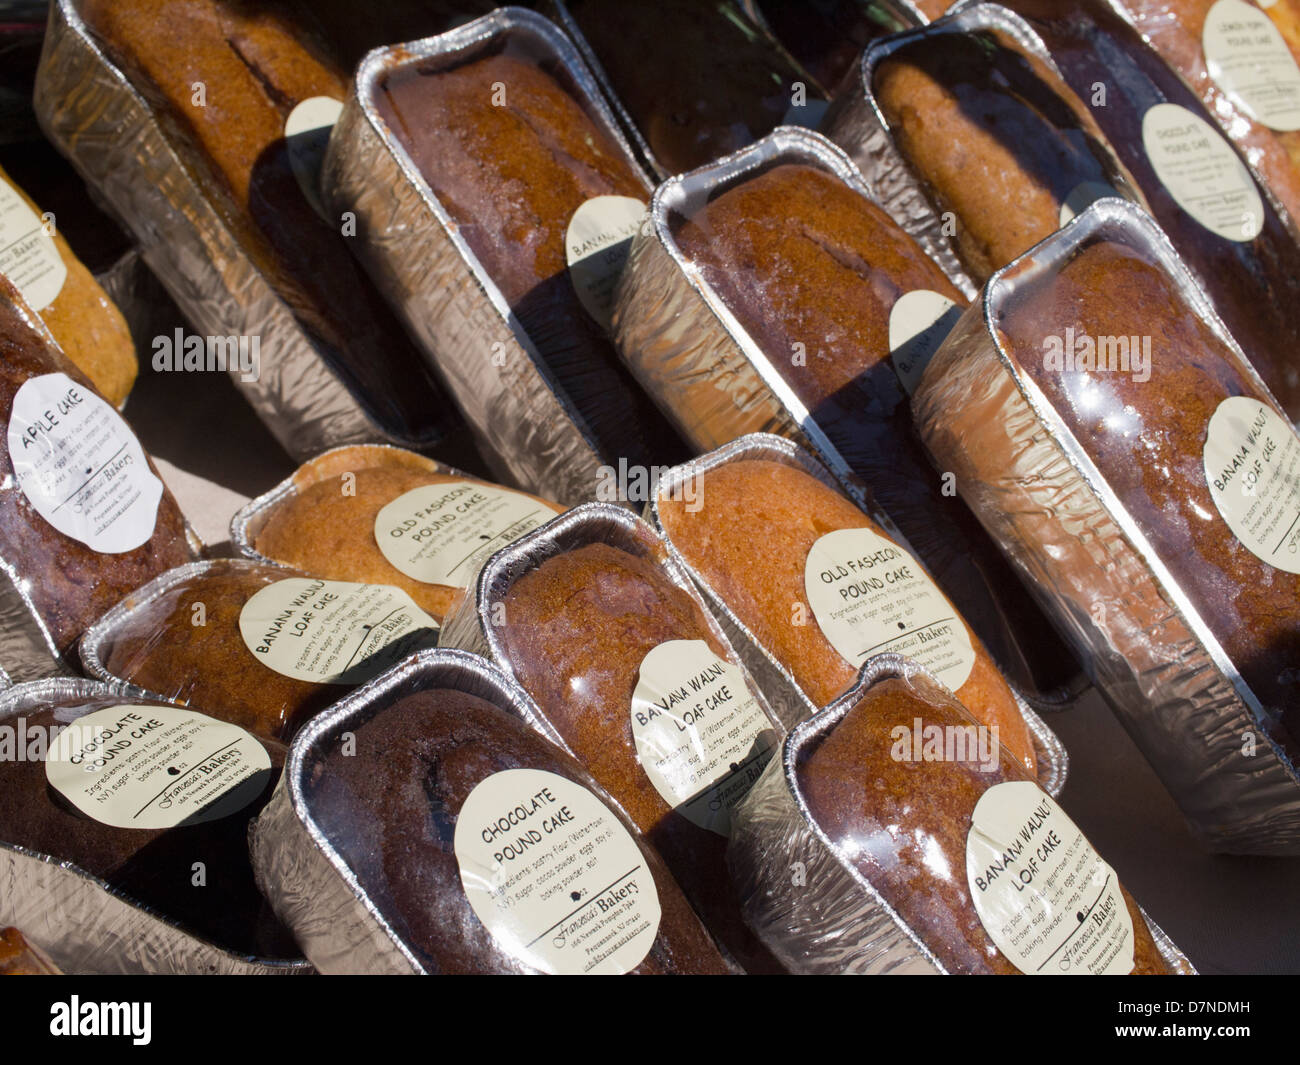 Cakes on display, Union Square Greenmarket, New York City - Stock Image